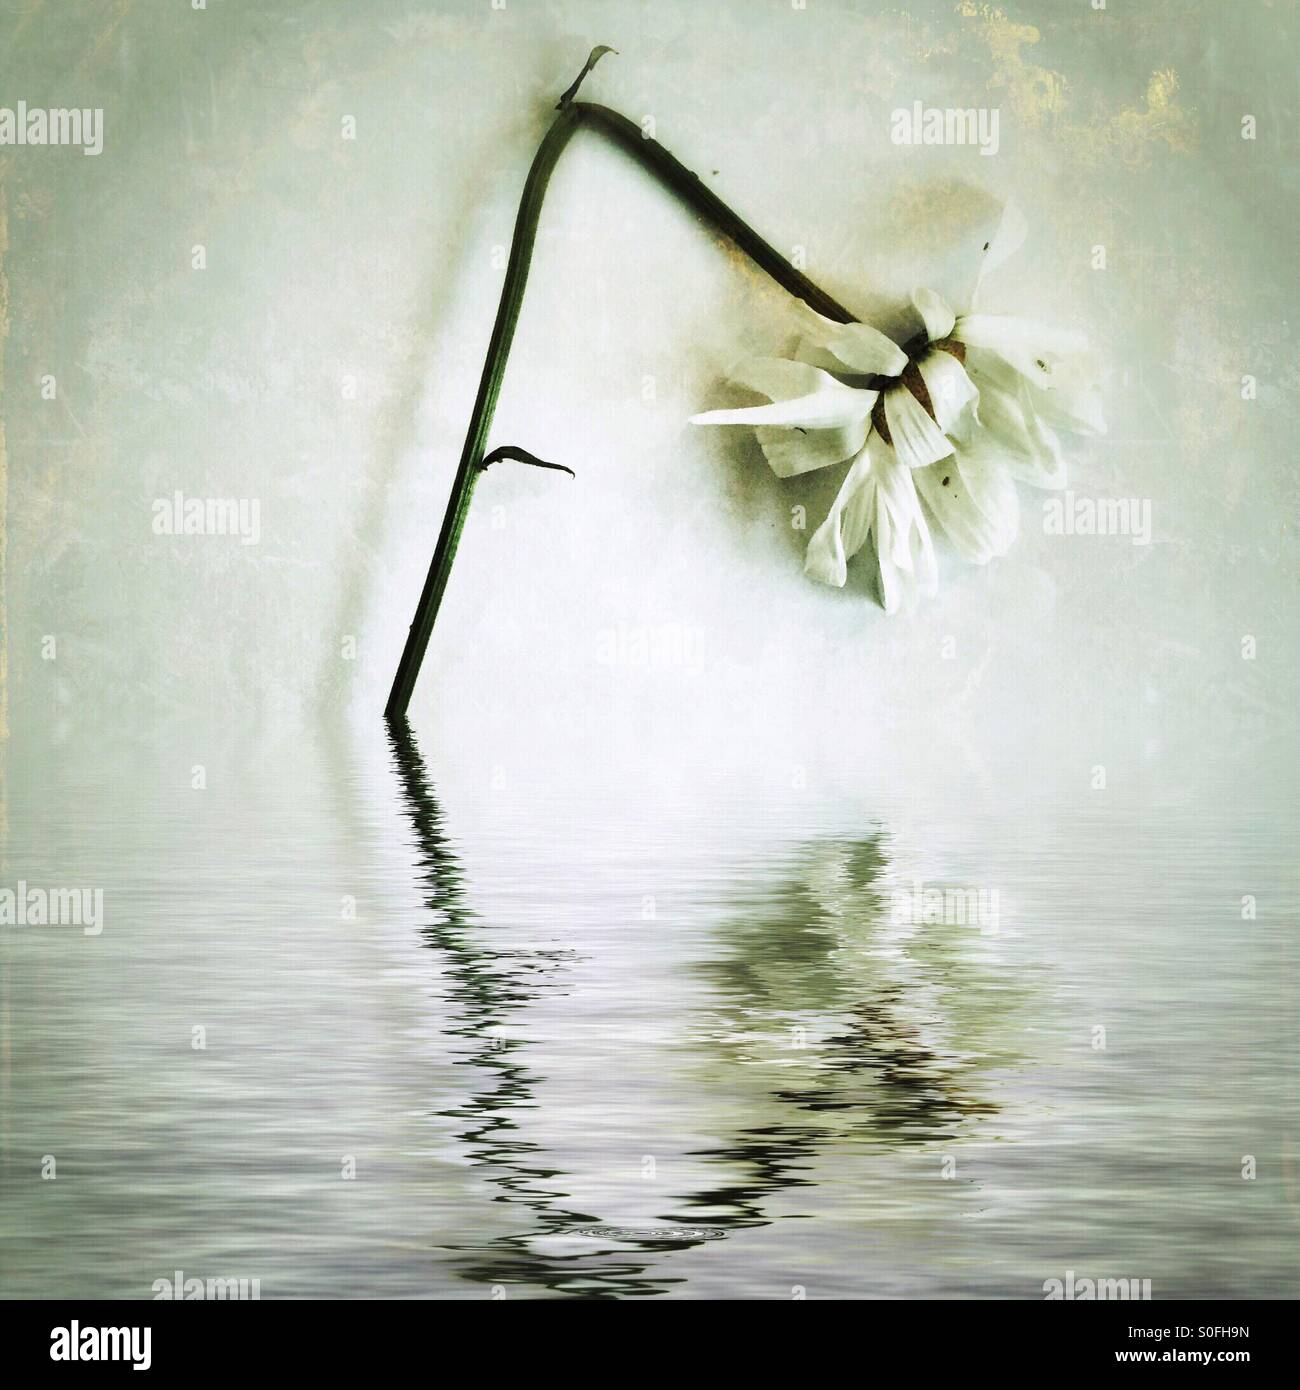 'By the Rivers of Babylon' (Concept: Unrequited Love) solitary white ox-eye daisy bends to the water as - Stock Image